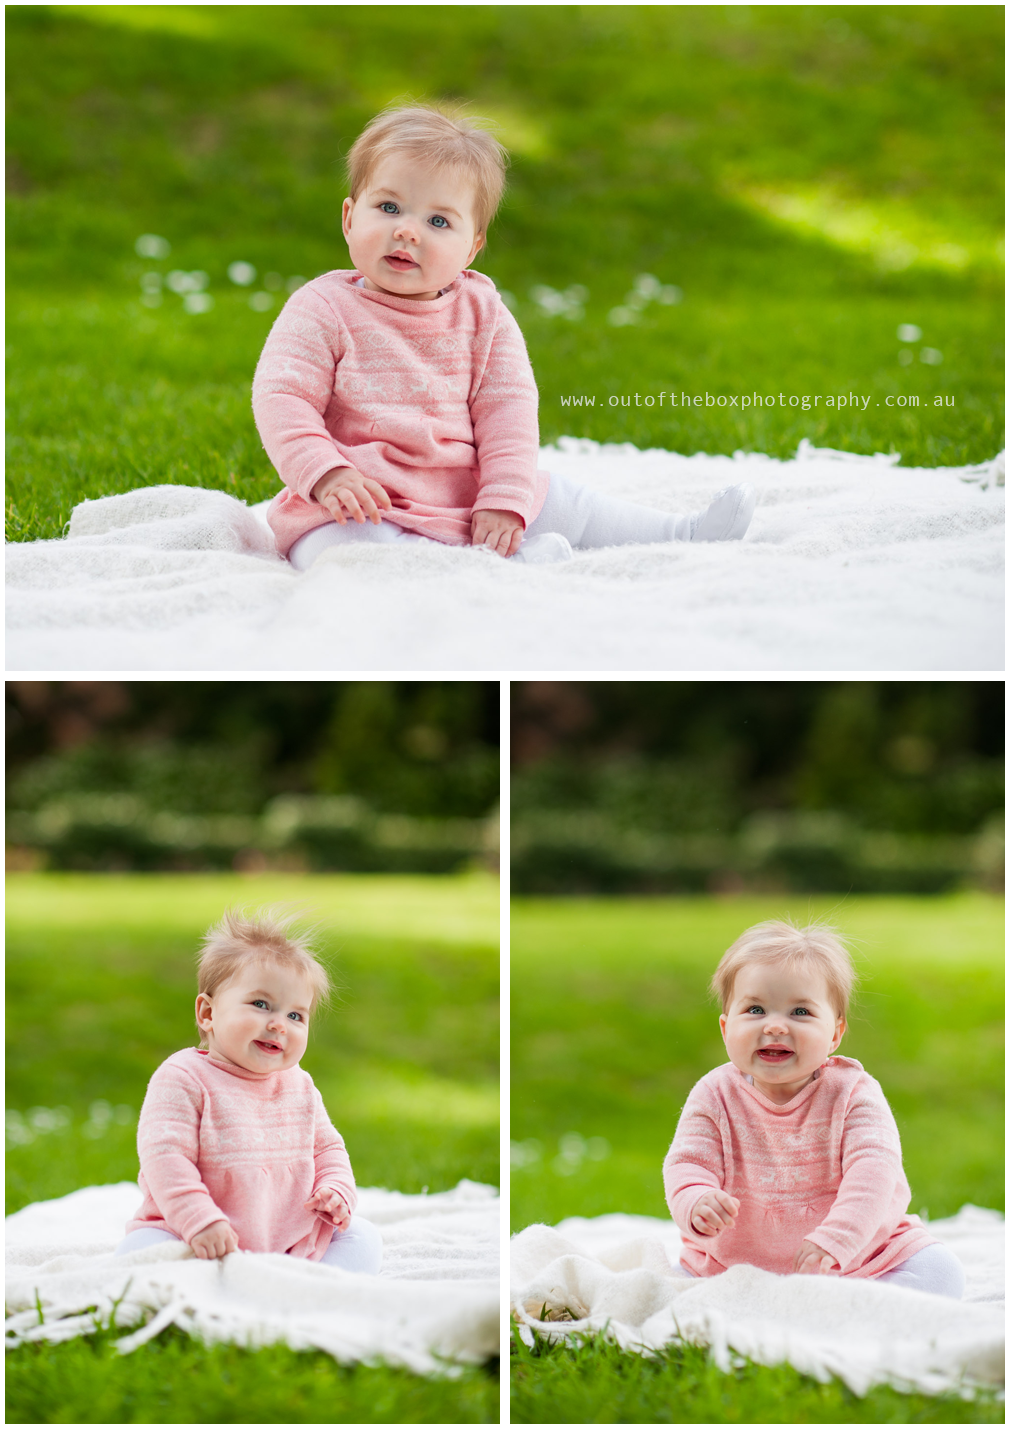 6-month-old-baby-girl-on-the-grass-laughing